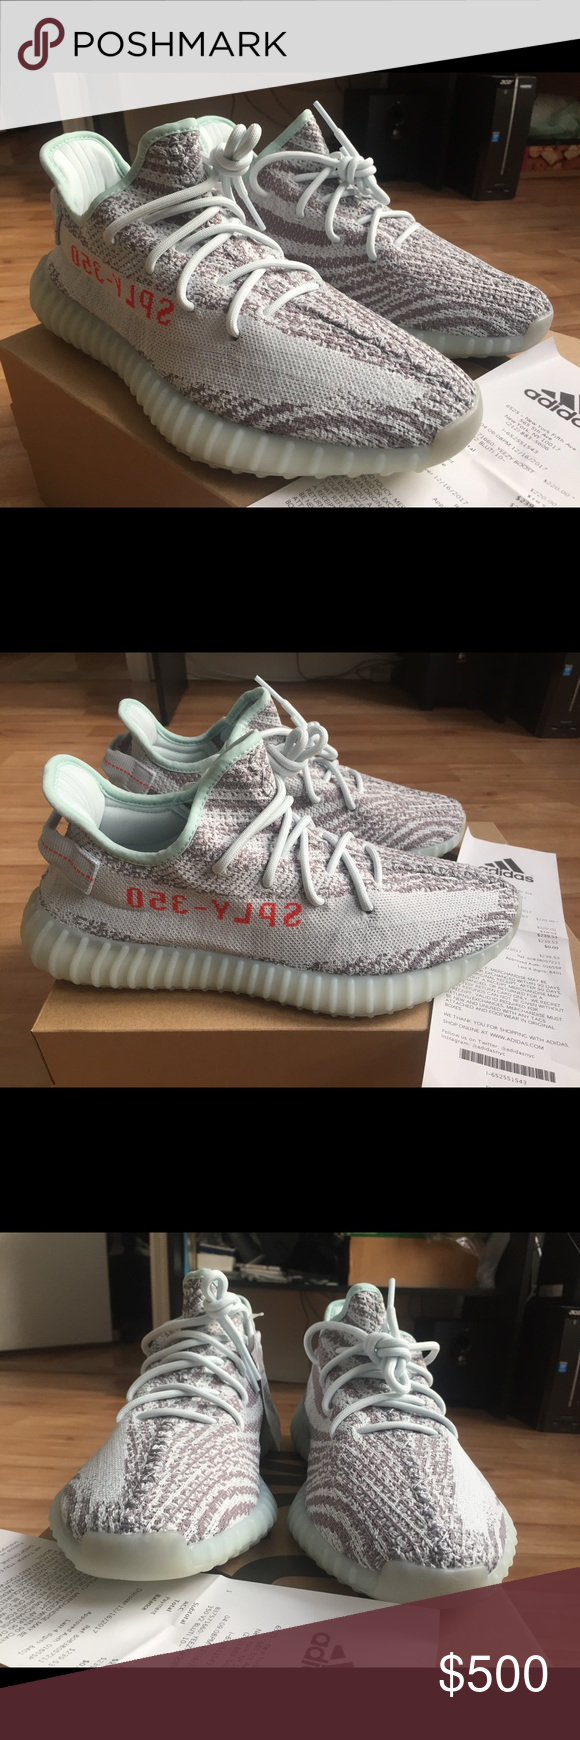 6a51844eae694 Adidas Yeezy Boost 350 V2 - (Blue Tint) 10.5 Men 100% authentic can provide receipt  proof Brand new